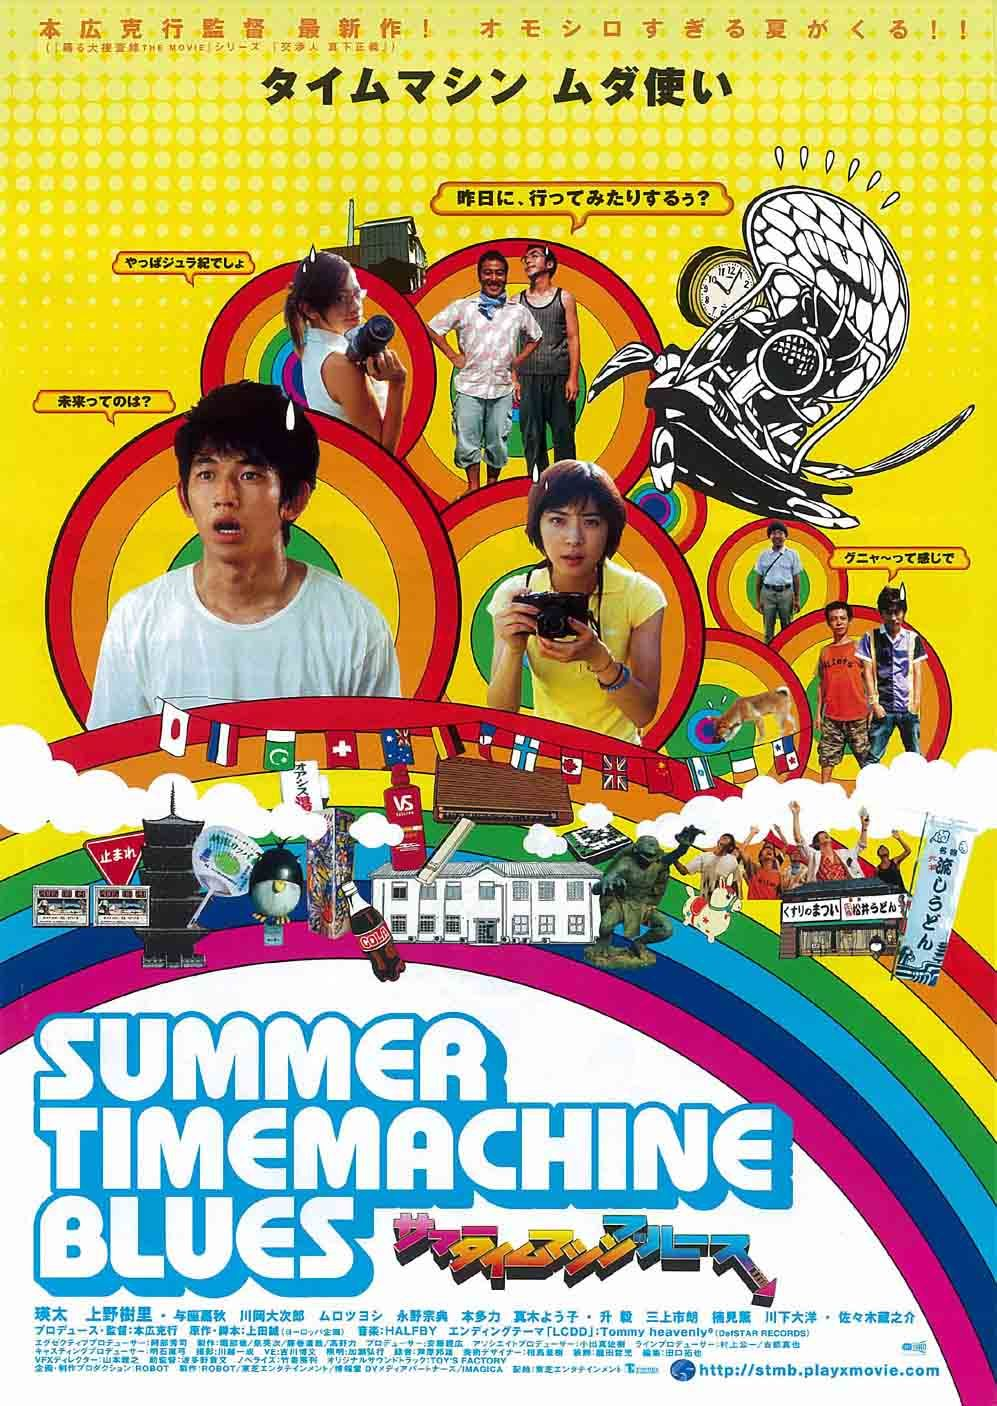 Summer Timemachine Blues (2005) In, out movie, Cinema